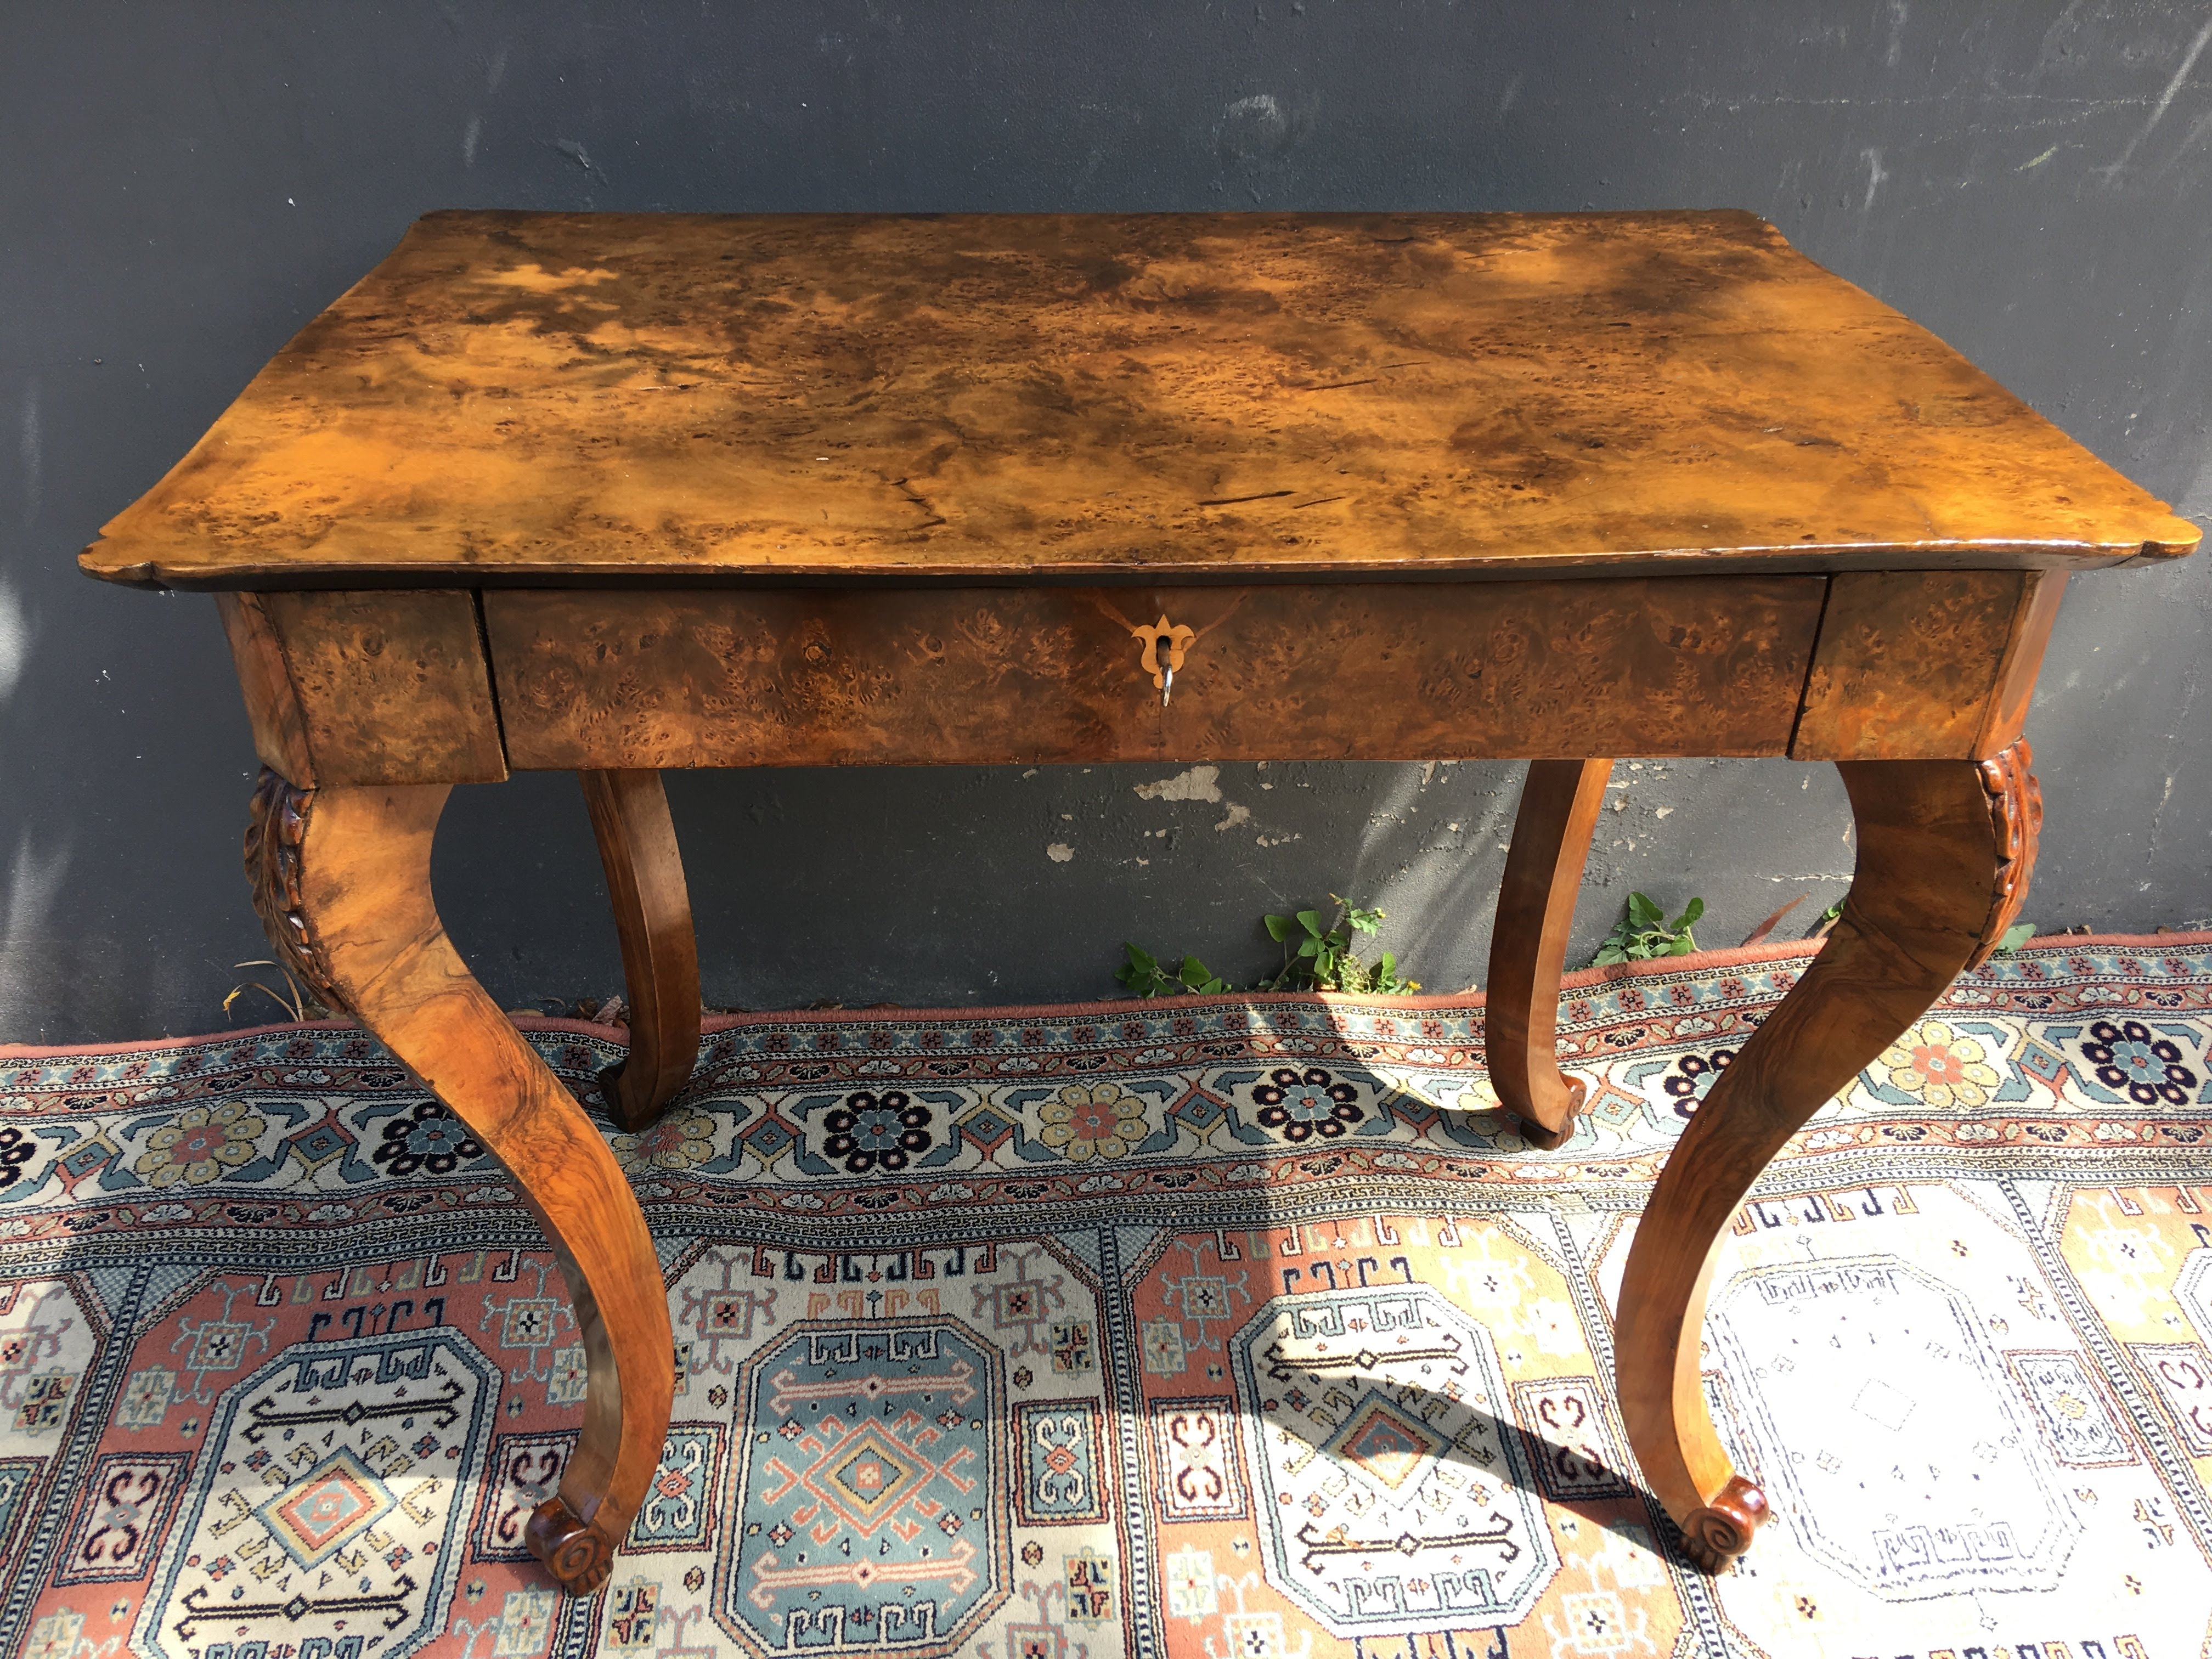 Austrian Biedermeier Side Table An Early 19th Century Austrian Biedermeier  Table In Birdseye Satin Birch, With A Shaped Top, Cabriole Legs With  Acanthus ...